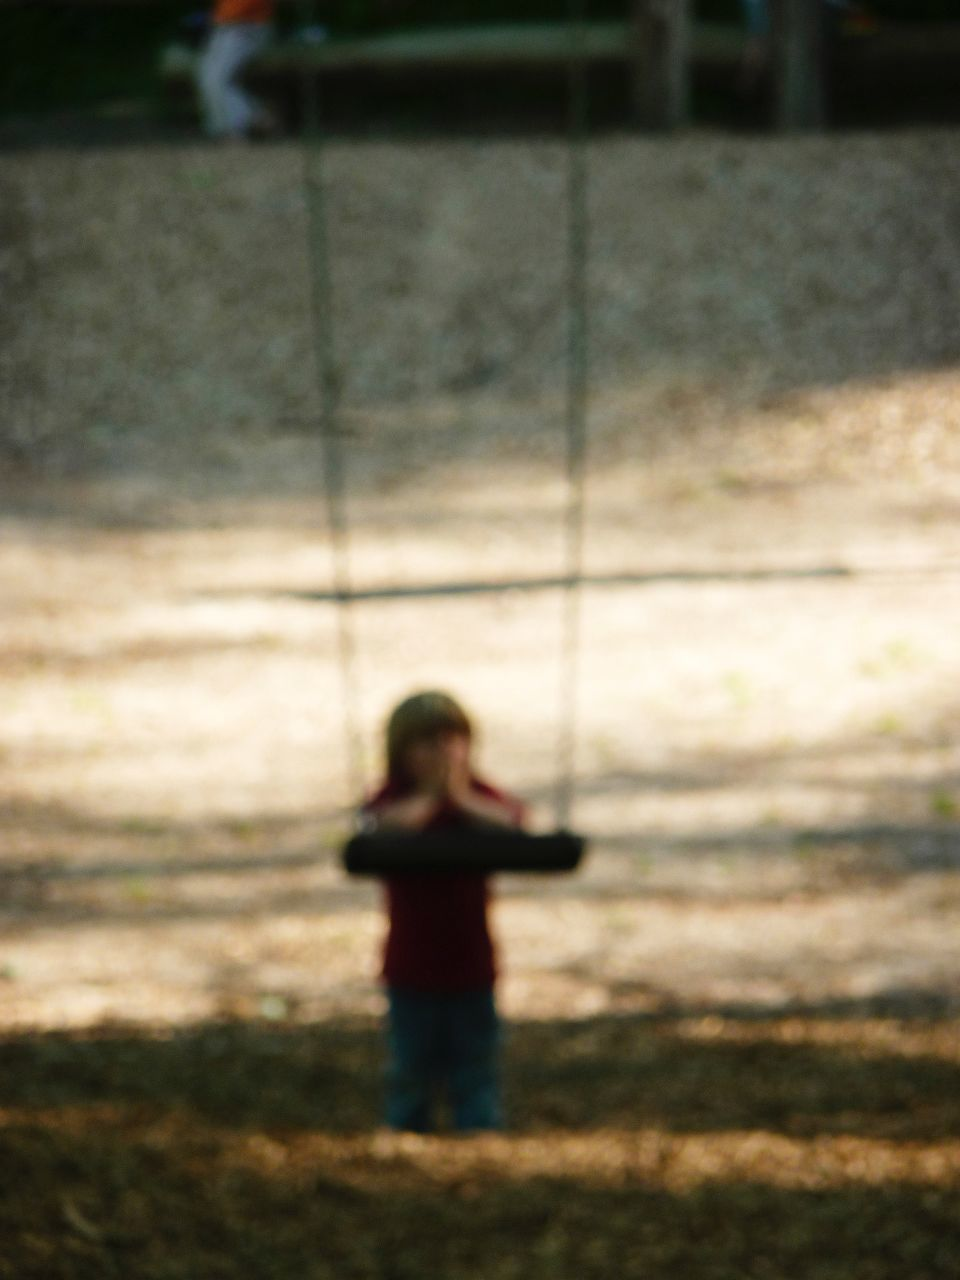 Defocused Image Of Child By Swing At Park